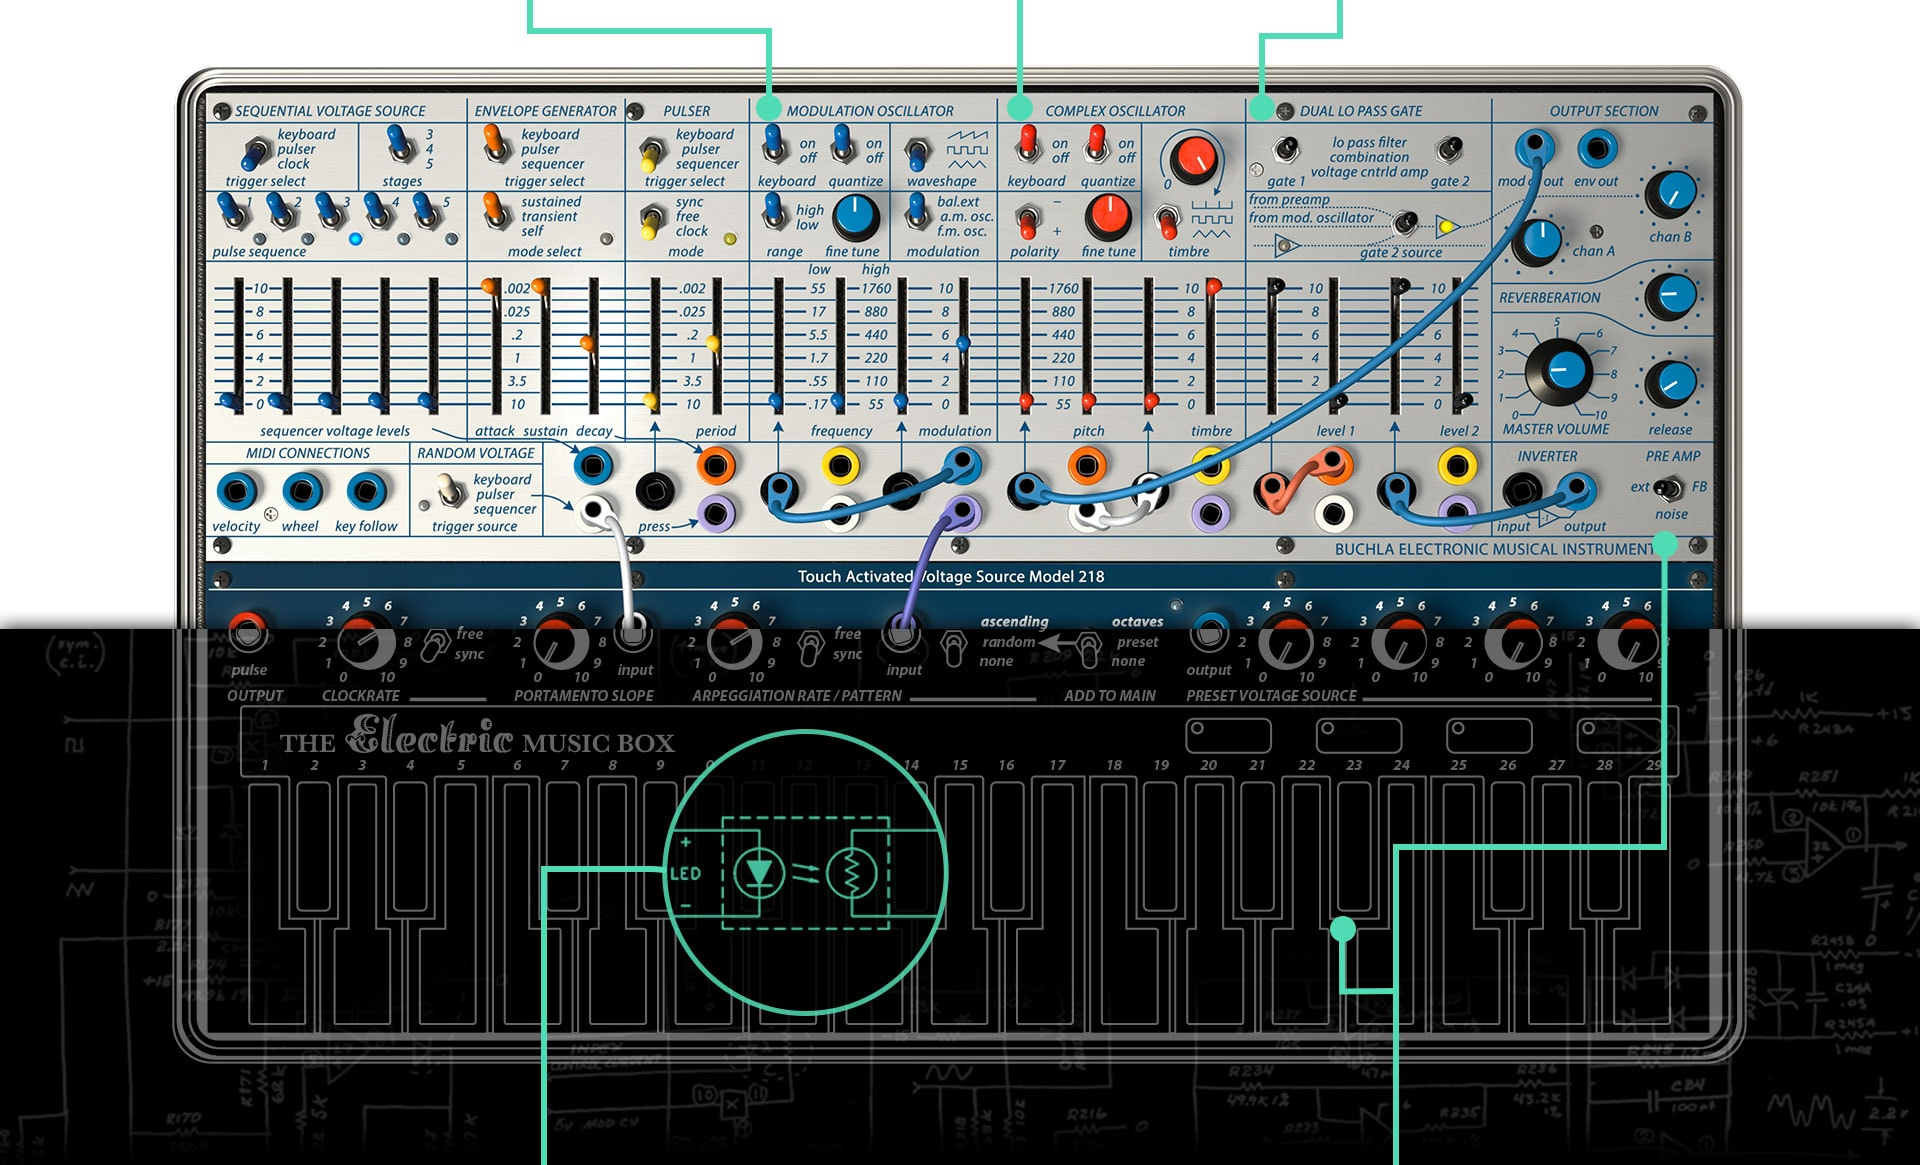 Arturia Details Rain Sound Effects Generator Circuit Process The Preamps Output Modulation Oscillator Or Complex In Latter Case Two Gates Operate Serially For Some Unique